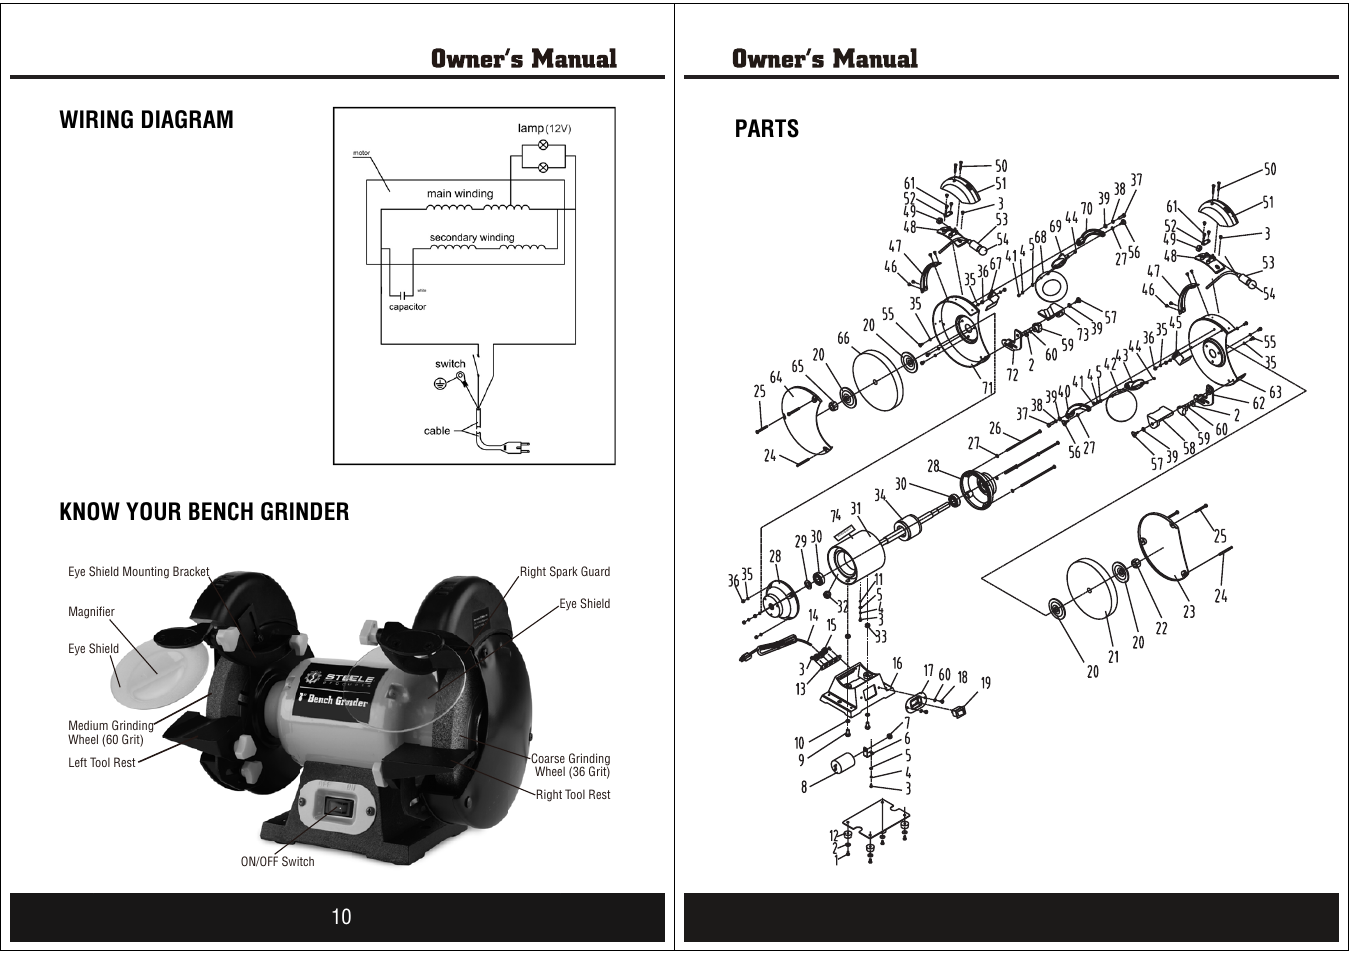 Wiring Diagram Know Your Bench Grinder Parts 11 Masterforce 8 Steele Products Sp Pb008 User Manual Page 6